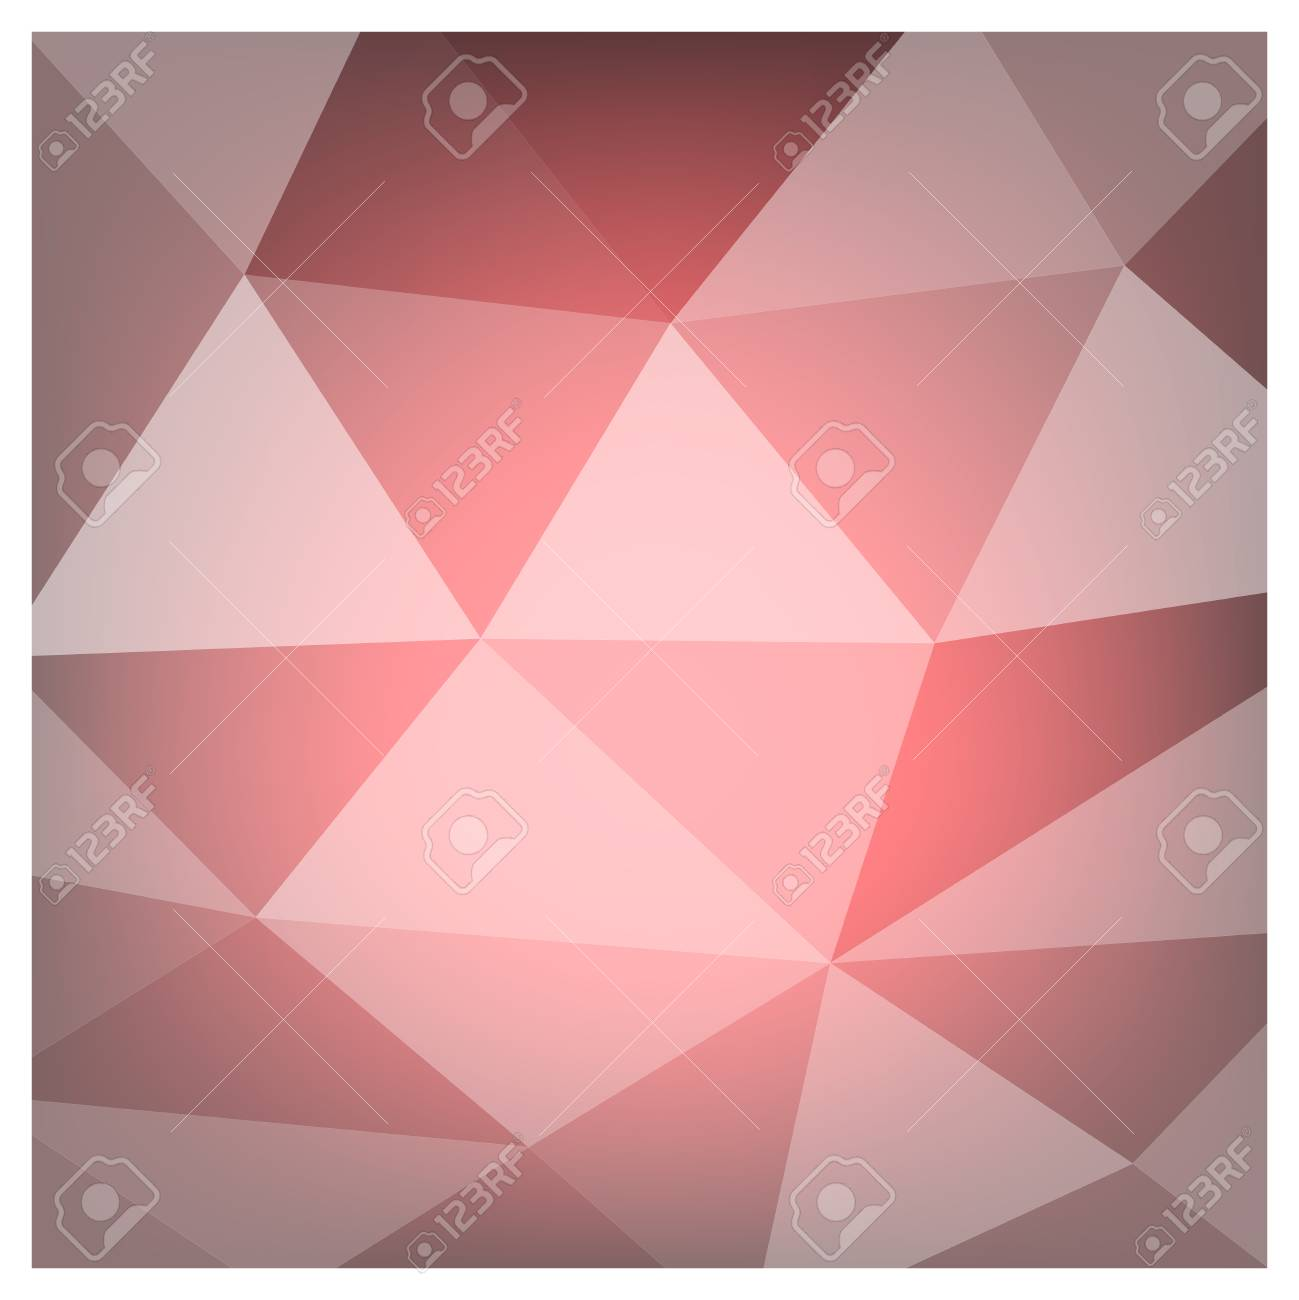 Red White Polygonal Mosaic Background, Vector illustration, Creative Business Design Templates - 61023765